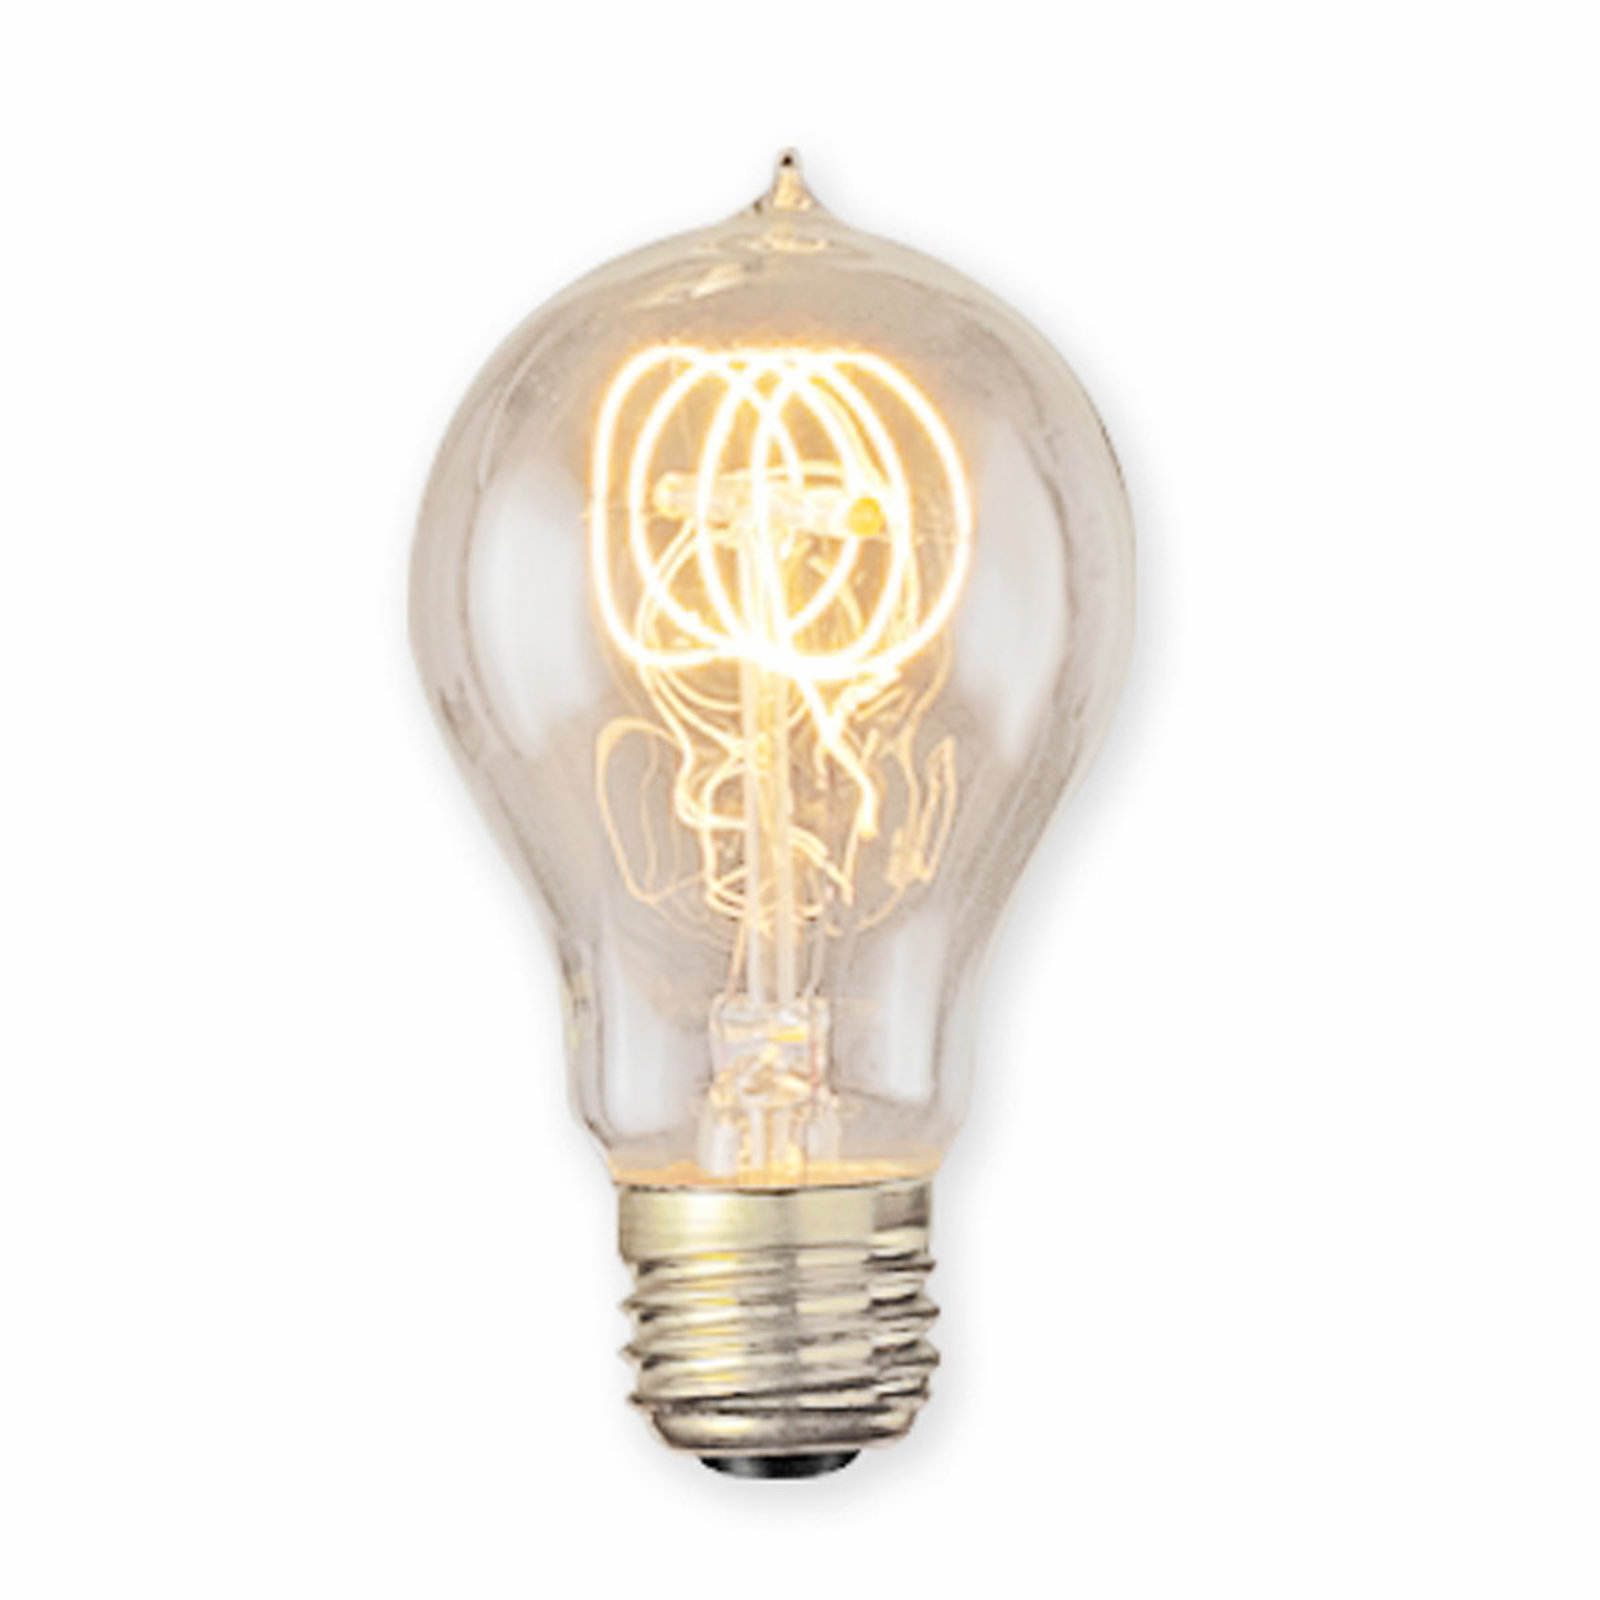 Vintage A19 Lighting And Lamps Modern clear Hanging Lighting edison antique industrial decorate bulb